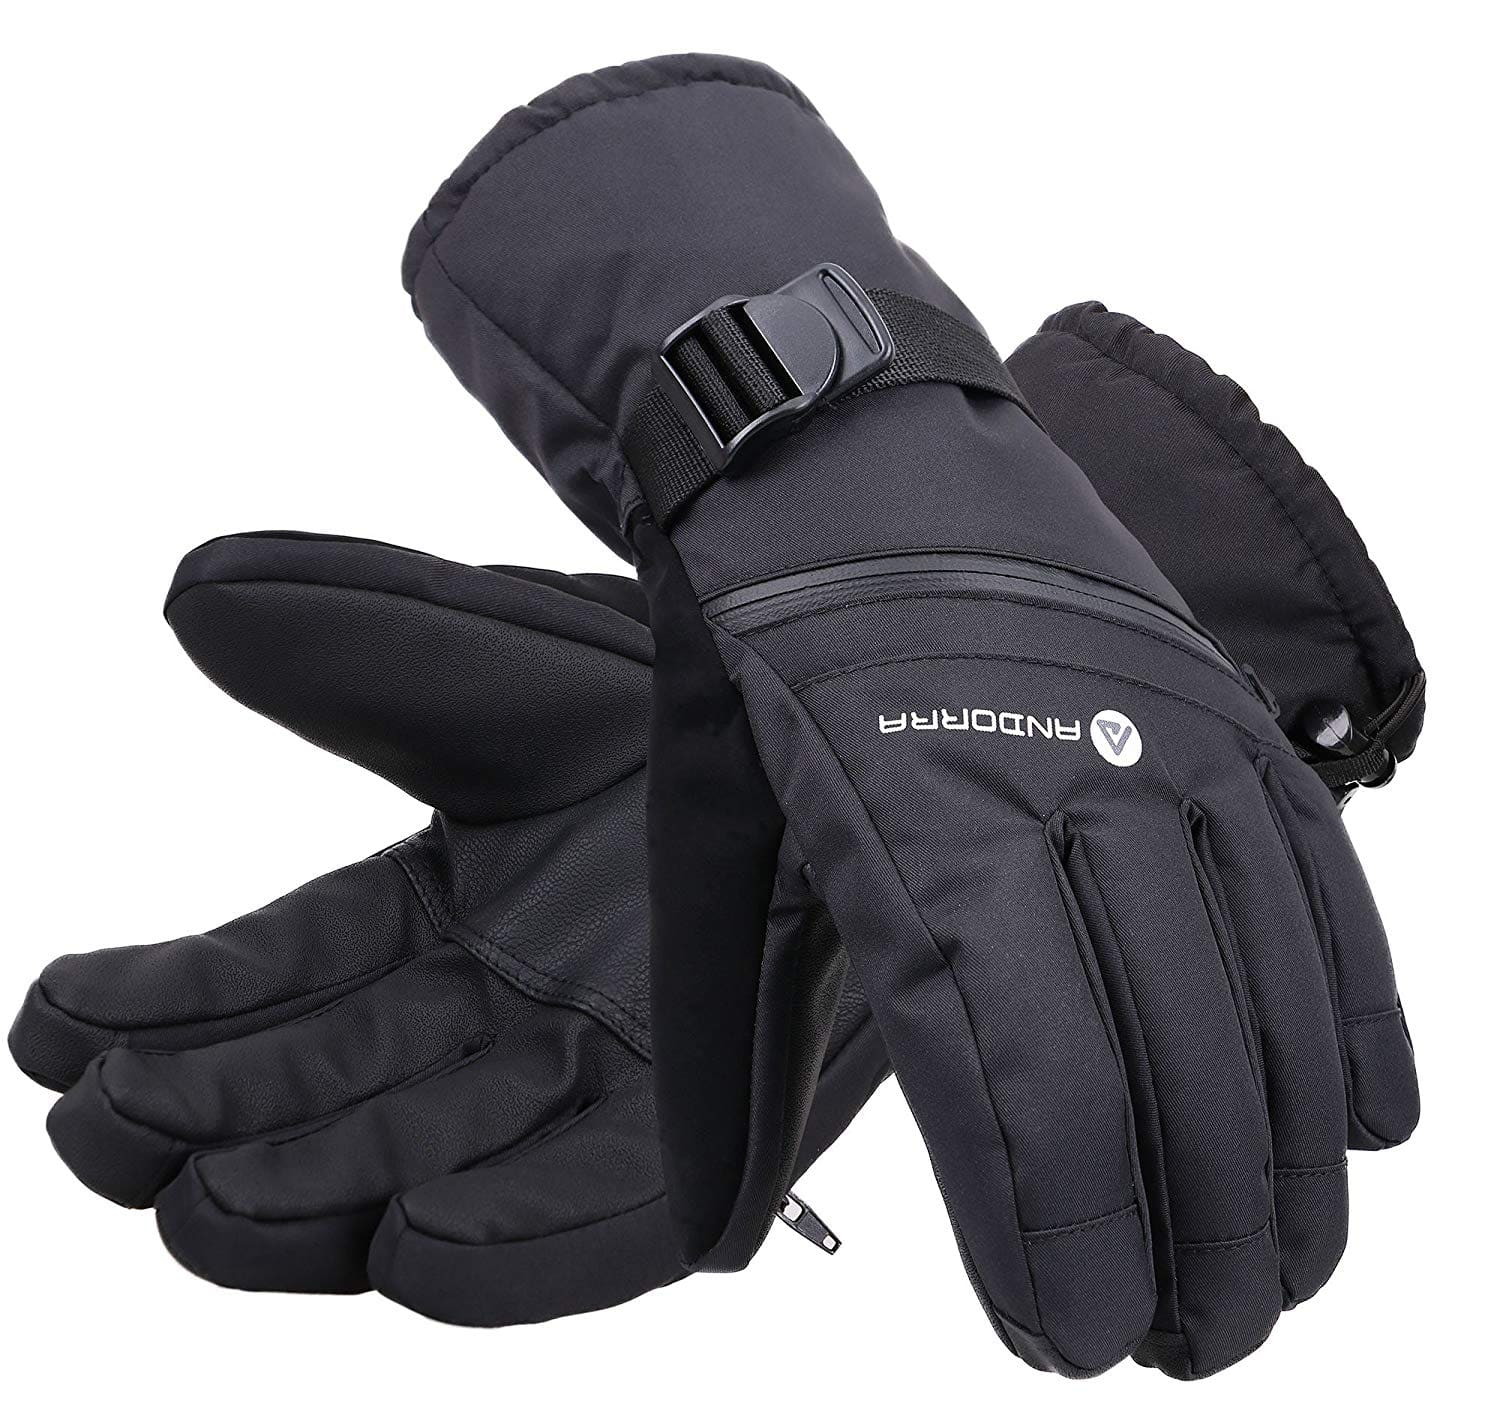 70% off 3M Thinsulate Gloves $8.99 + Free Shipping